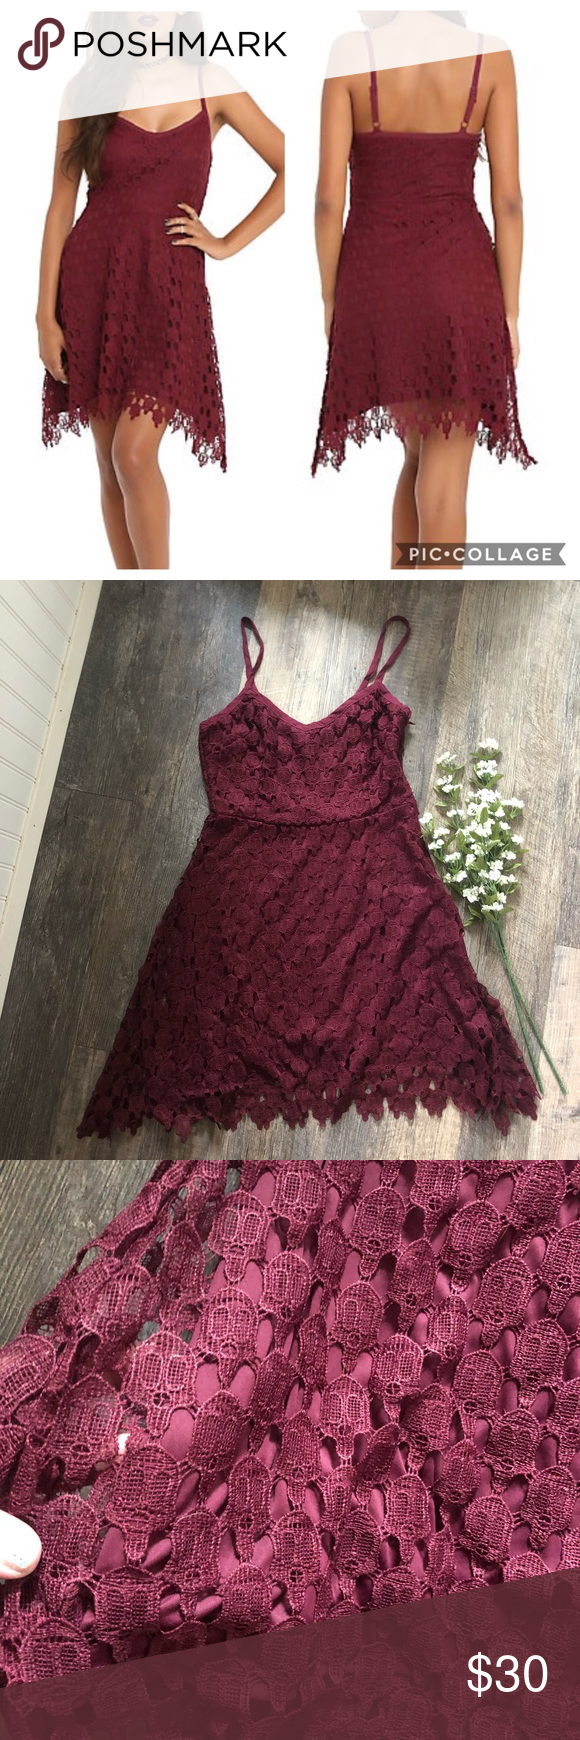 "Hot Topic | Burgundy Lace Skull Dress Excellent used condition Hot Topic Burgundy Dress Skull lace overlay, adjustable straps, side zipper  Measurements: Pit to pit-16"" Waist-14"" Length-36"" All measurements are approximate hand measurements taken while the garment is laying flat. No trades, open to offers! Hot Topic Dresses #hottopicclothes Hot Topic 